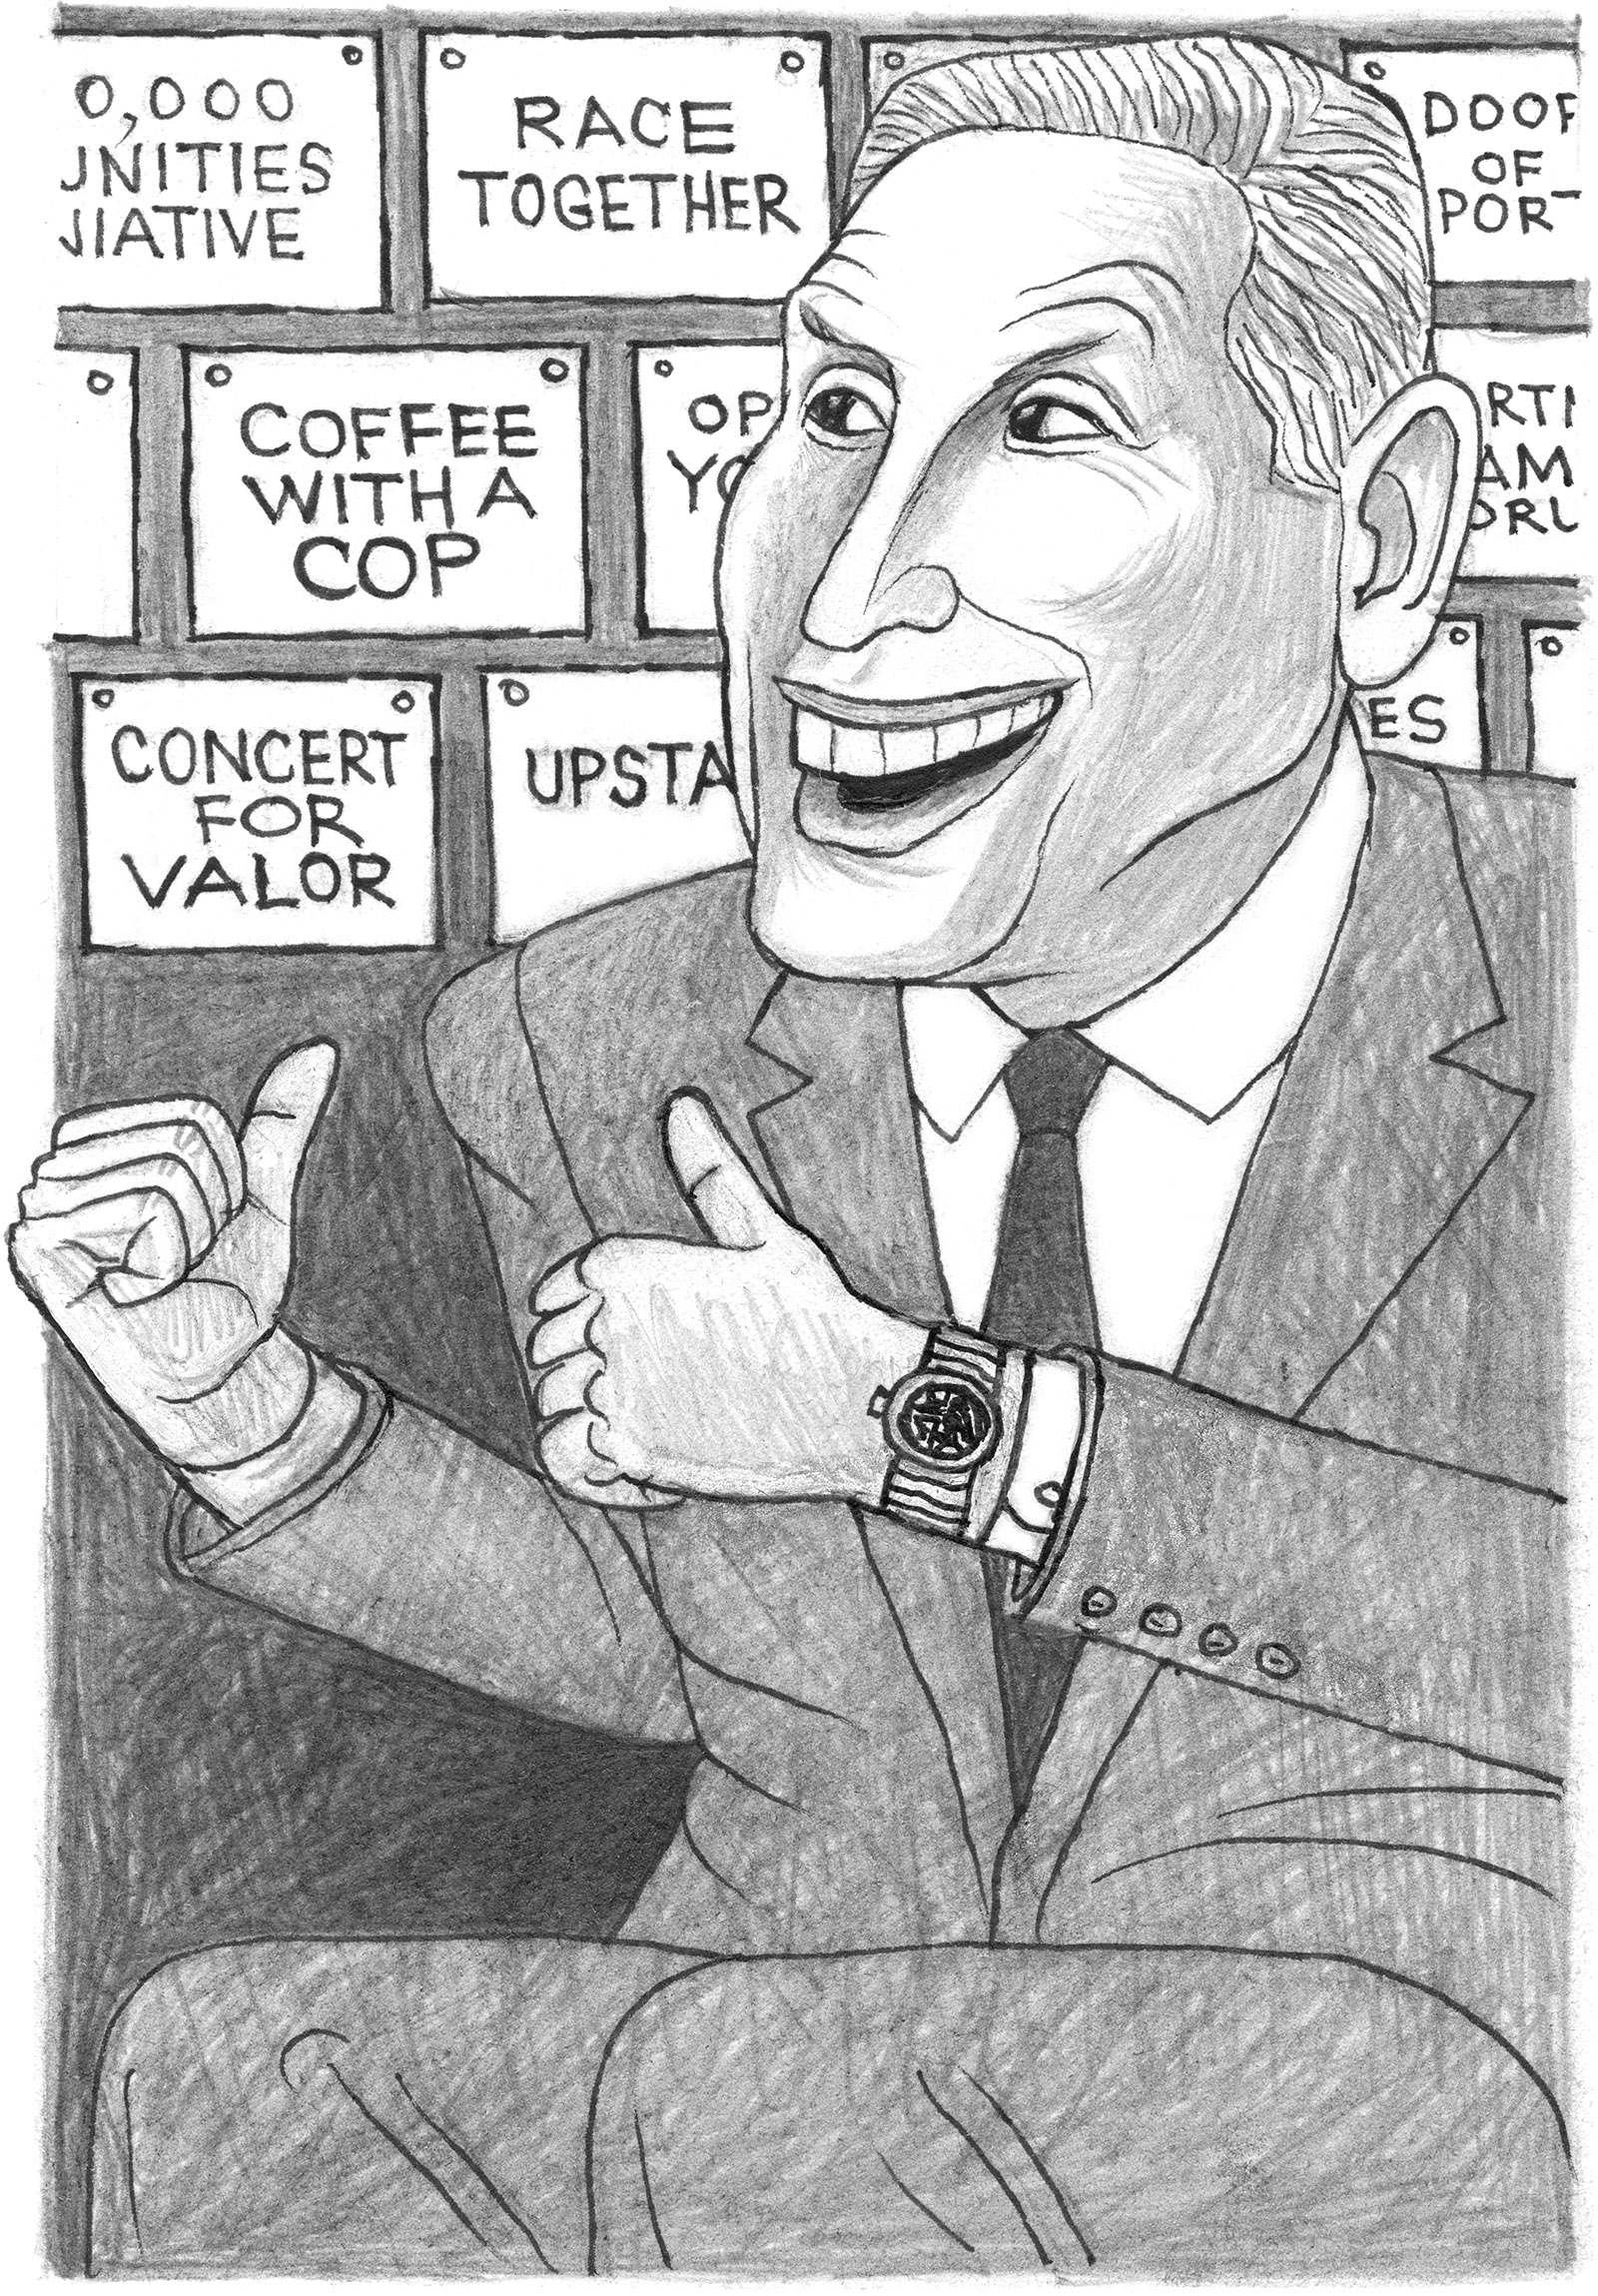 Howard Schultz; drawing by Mark Alan Stamaty